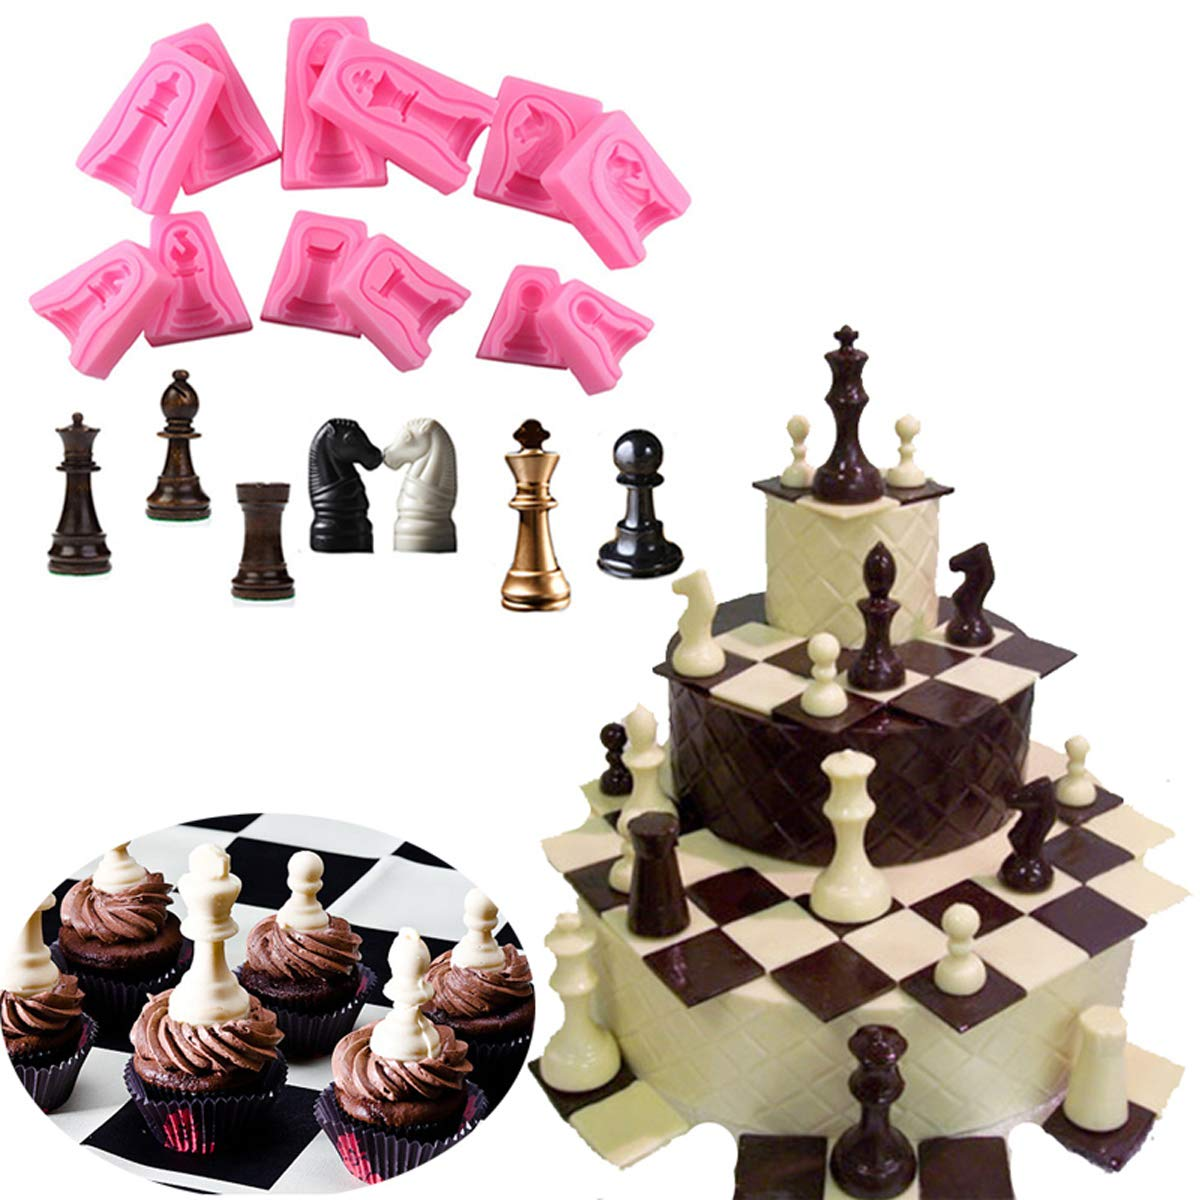 Anyana International chess game 6 sets fondnat silicone mold 3D double-sided printing gum paste mold chocolate candy mould baking clay cupcake toppers decorating cake tools